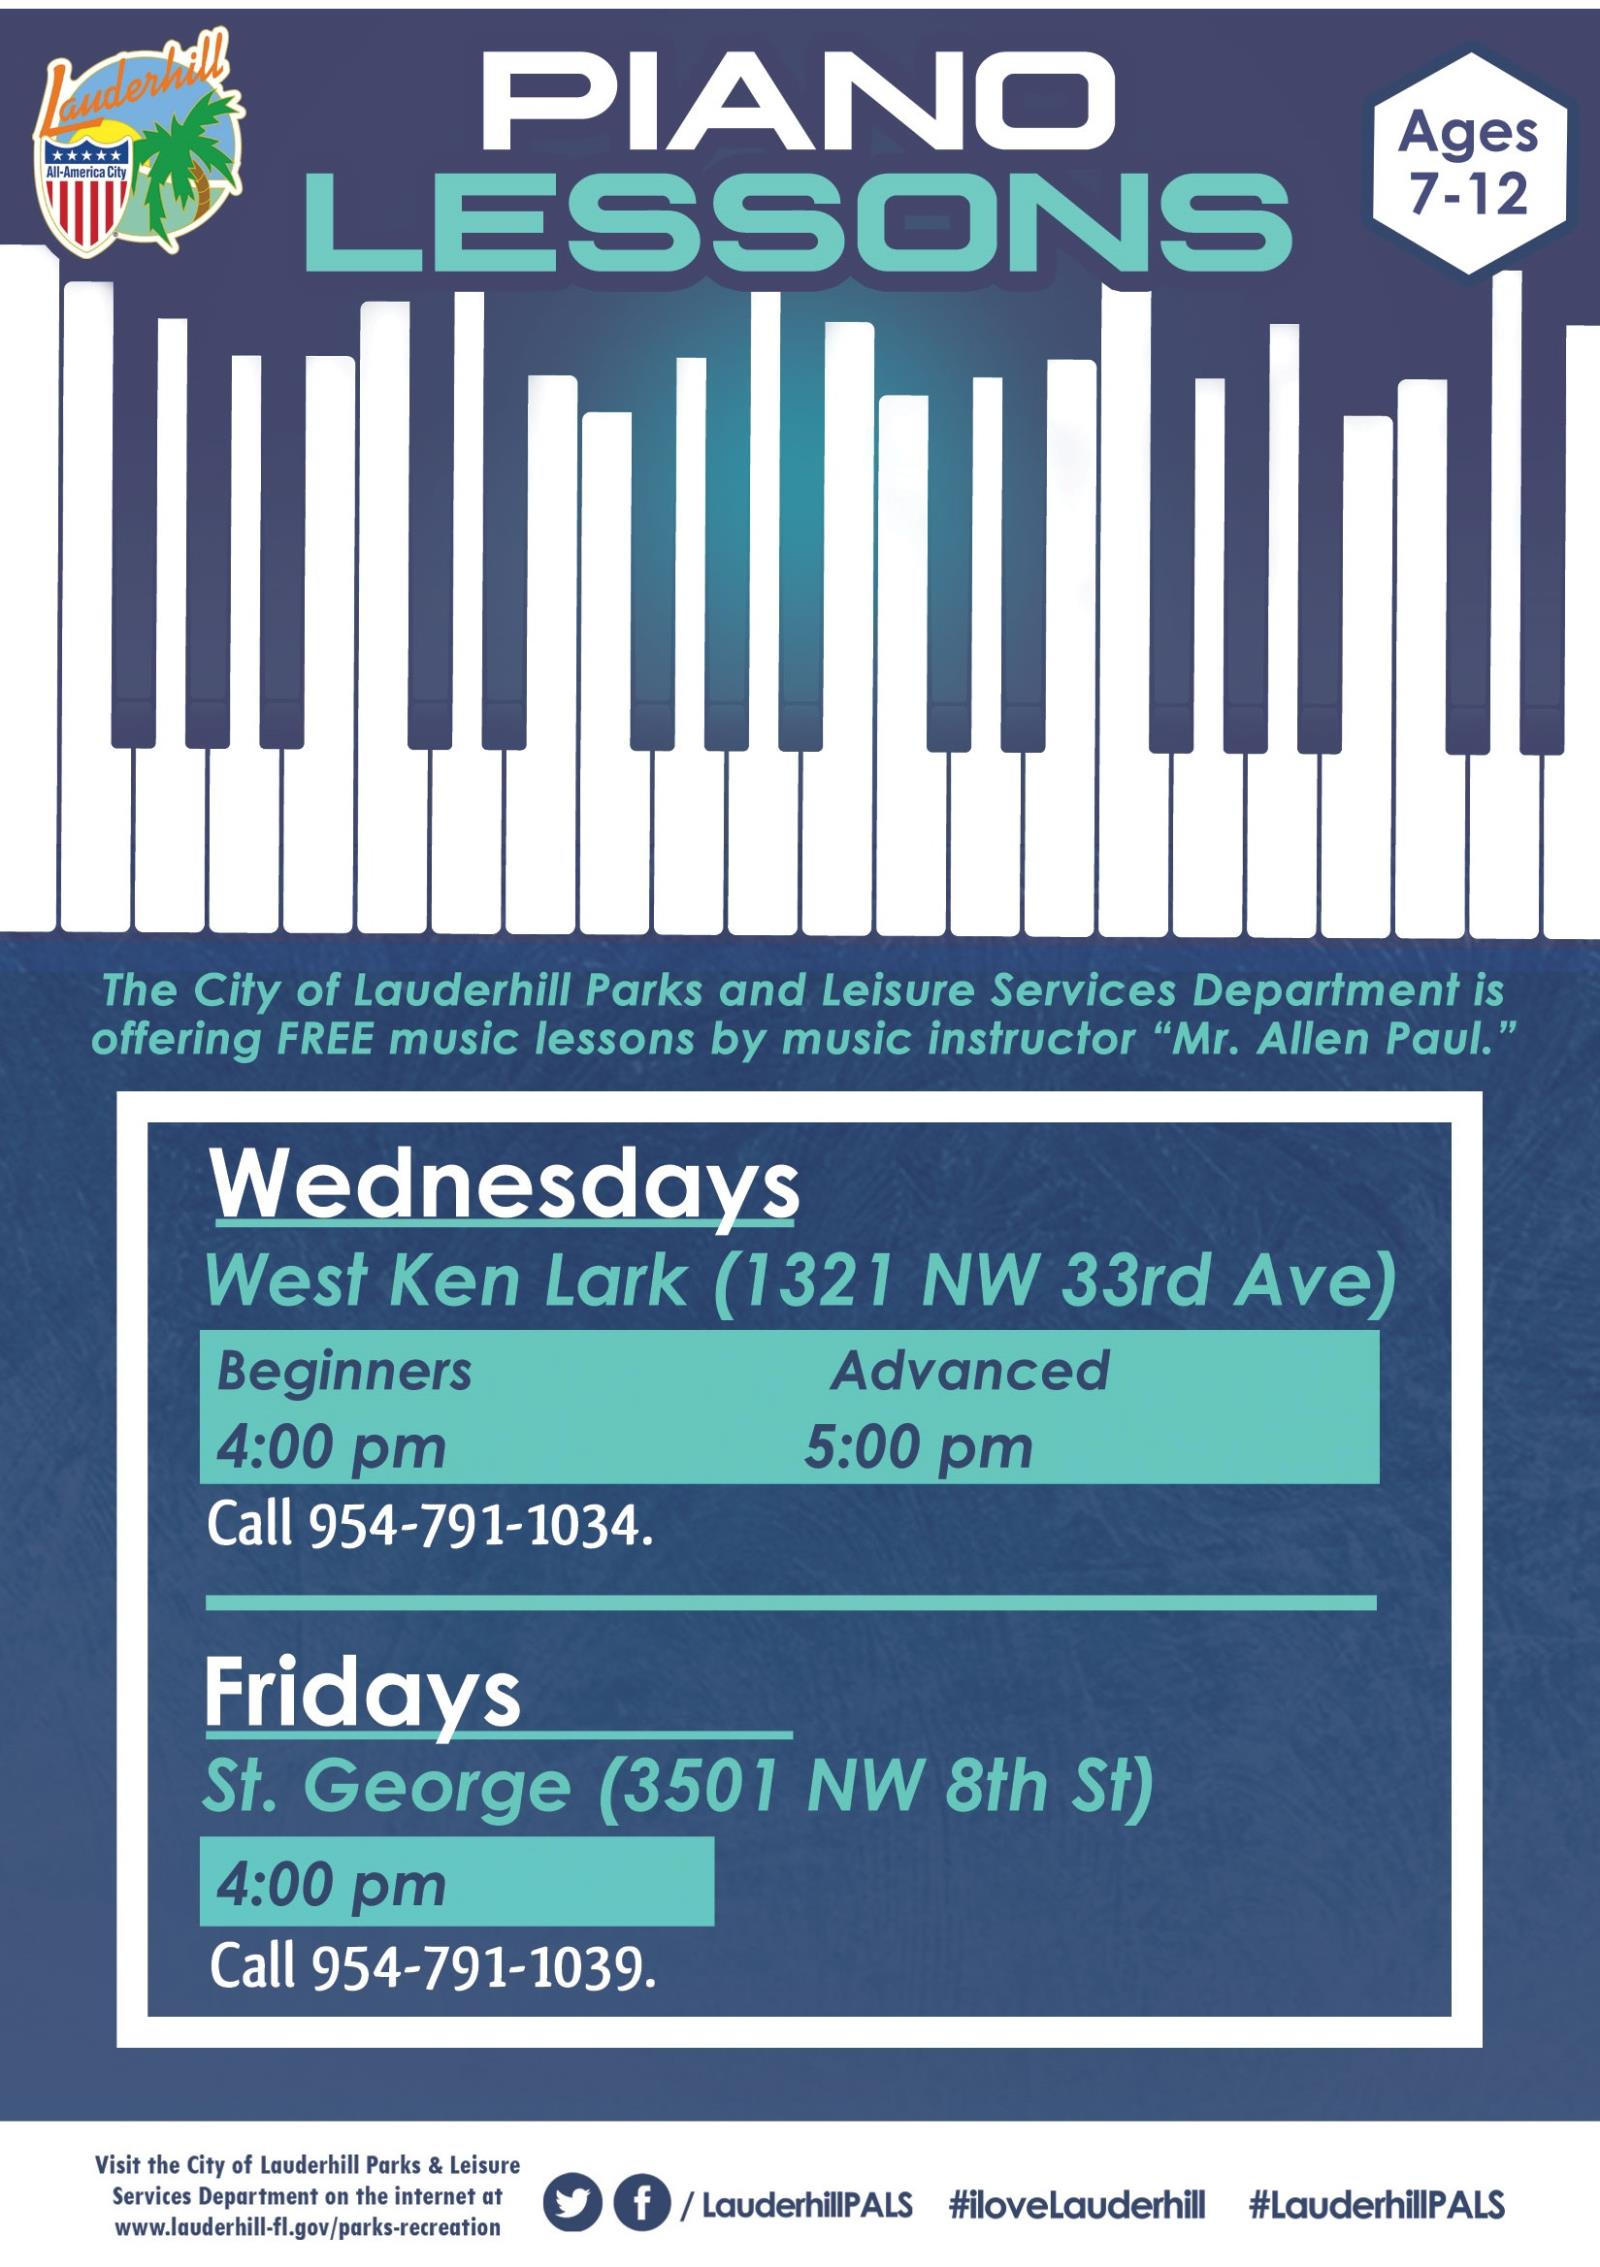 St. George & West Ken Lark Park Piano Lessons